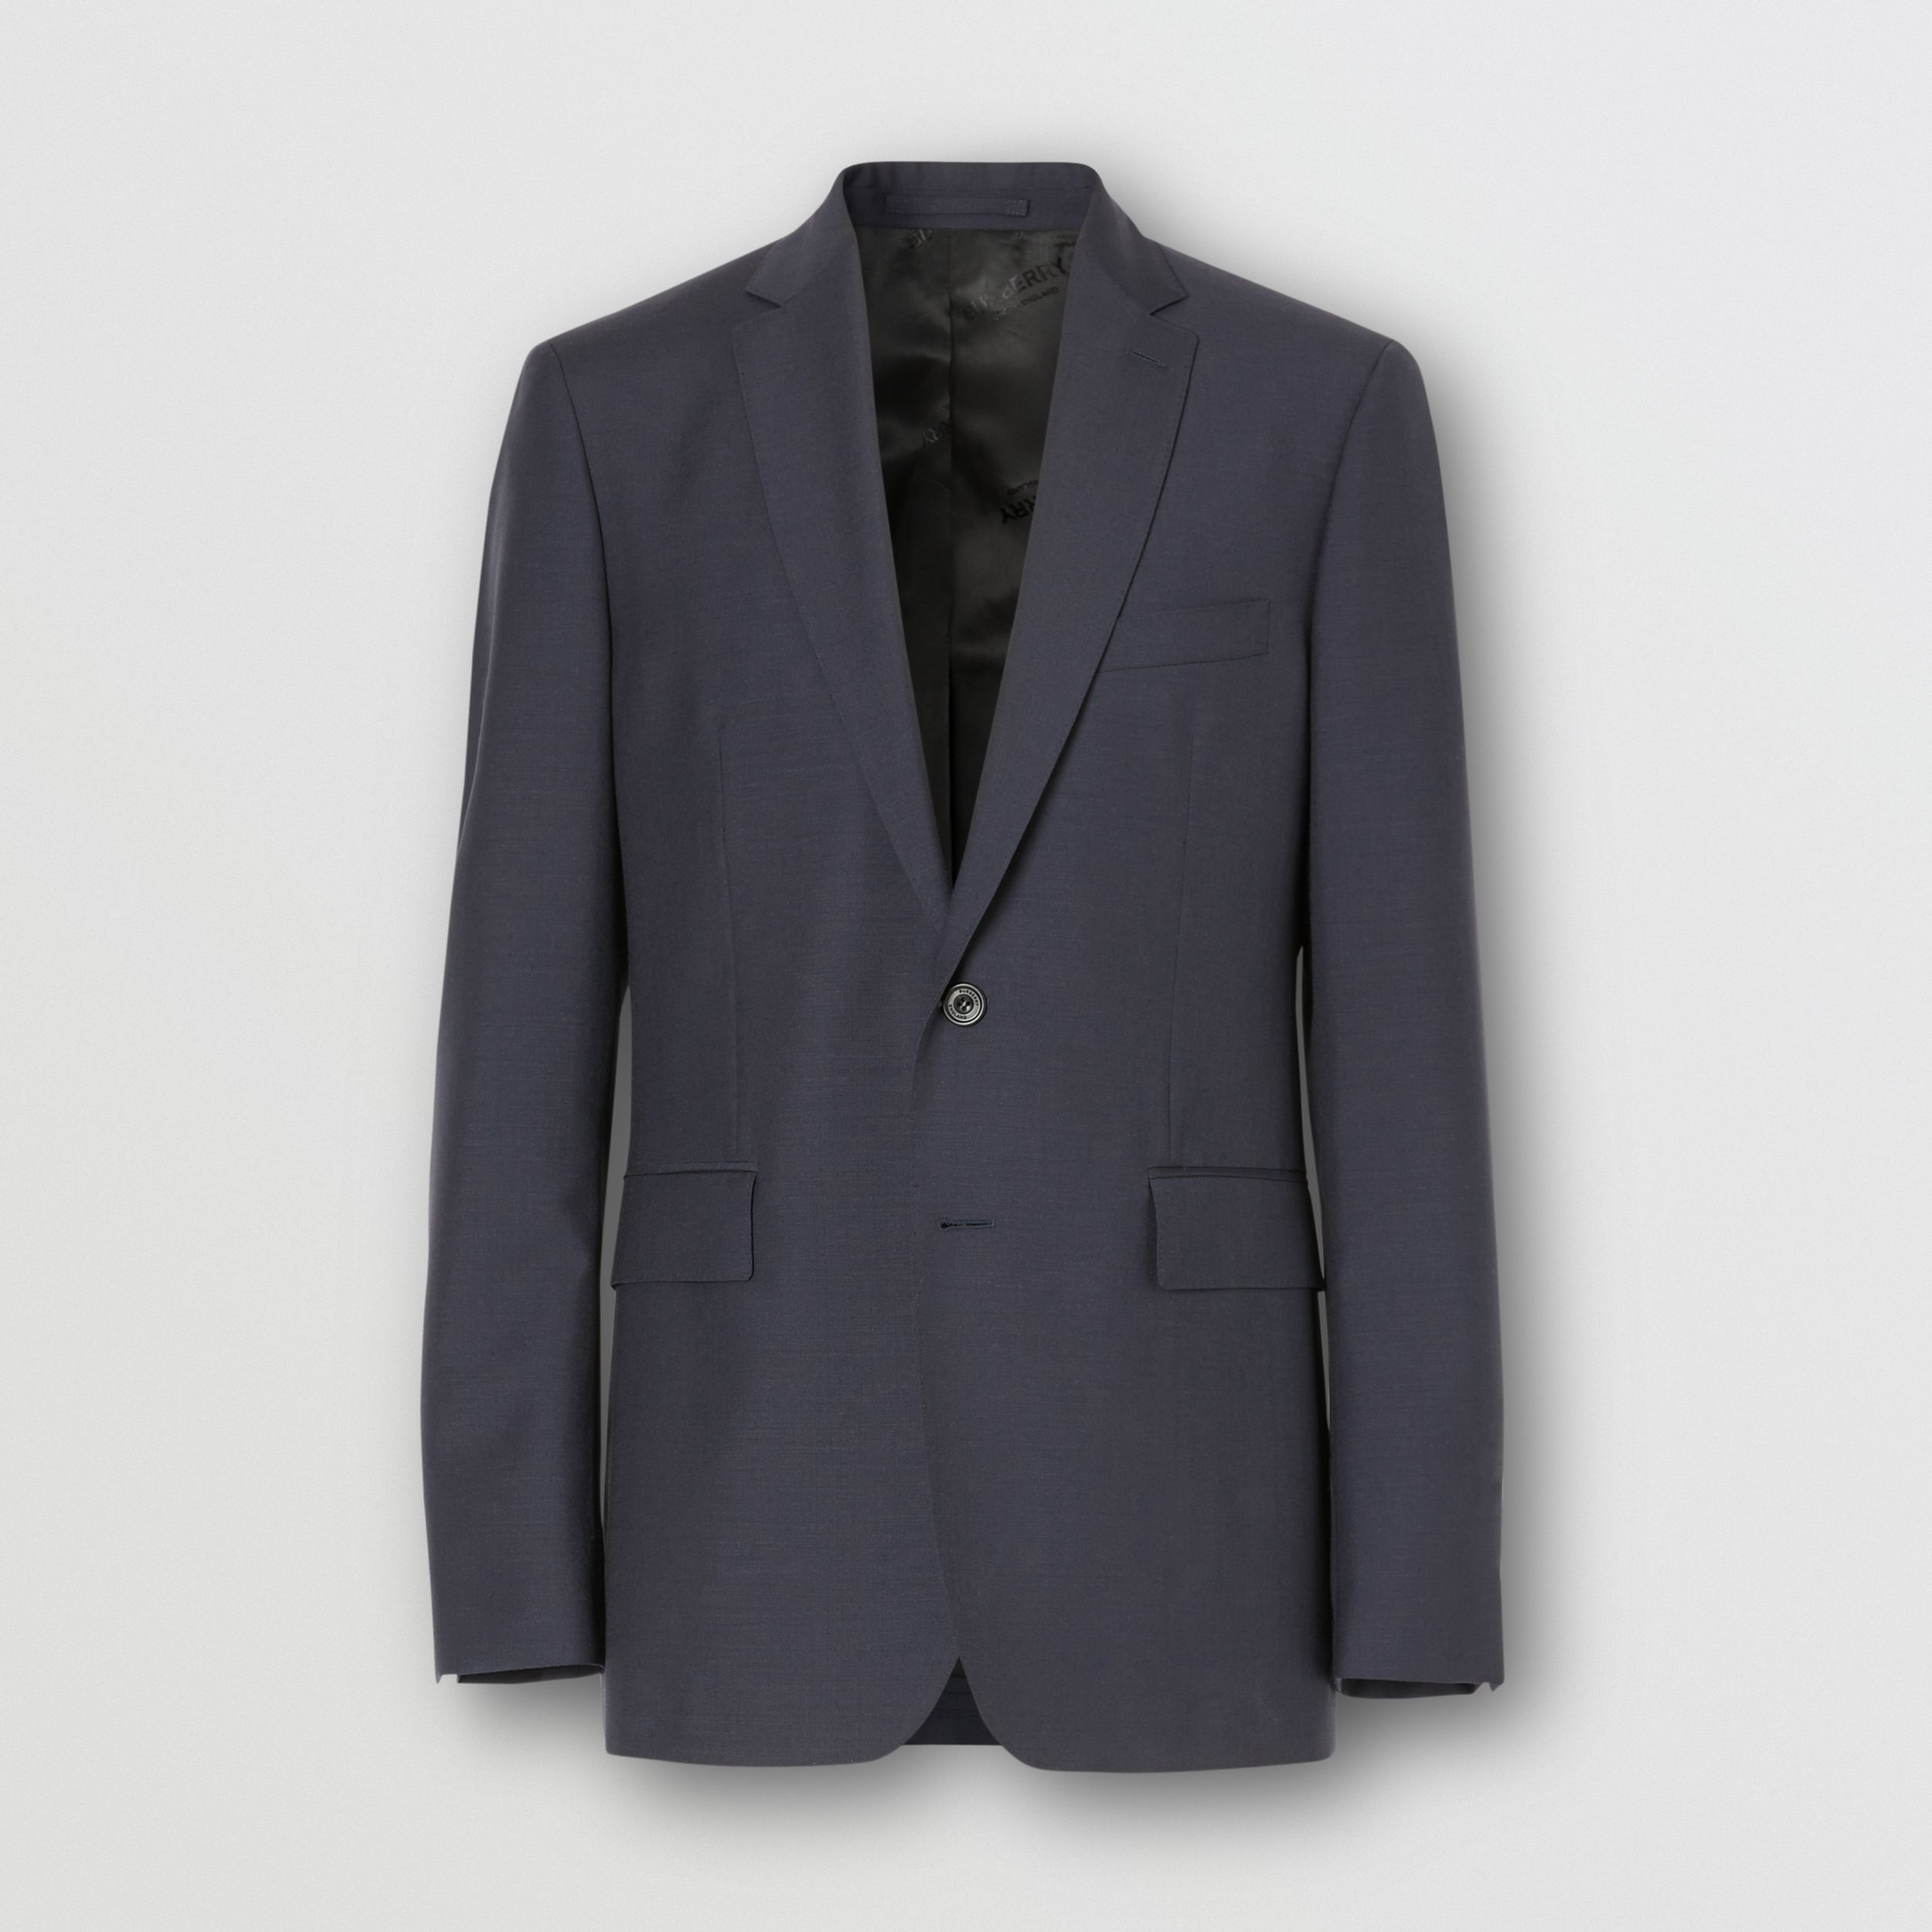 Slim Fit Wool Mohair Suit in Navy - Men | Burberry - 4